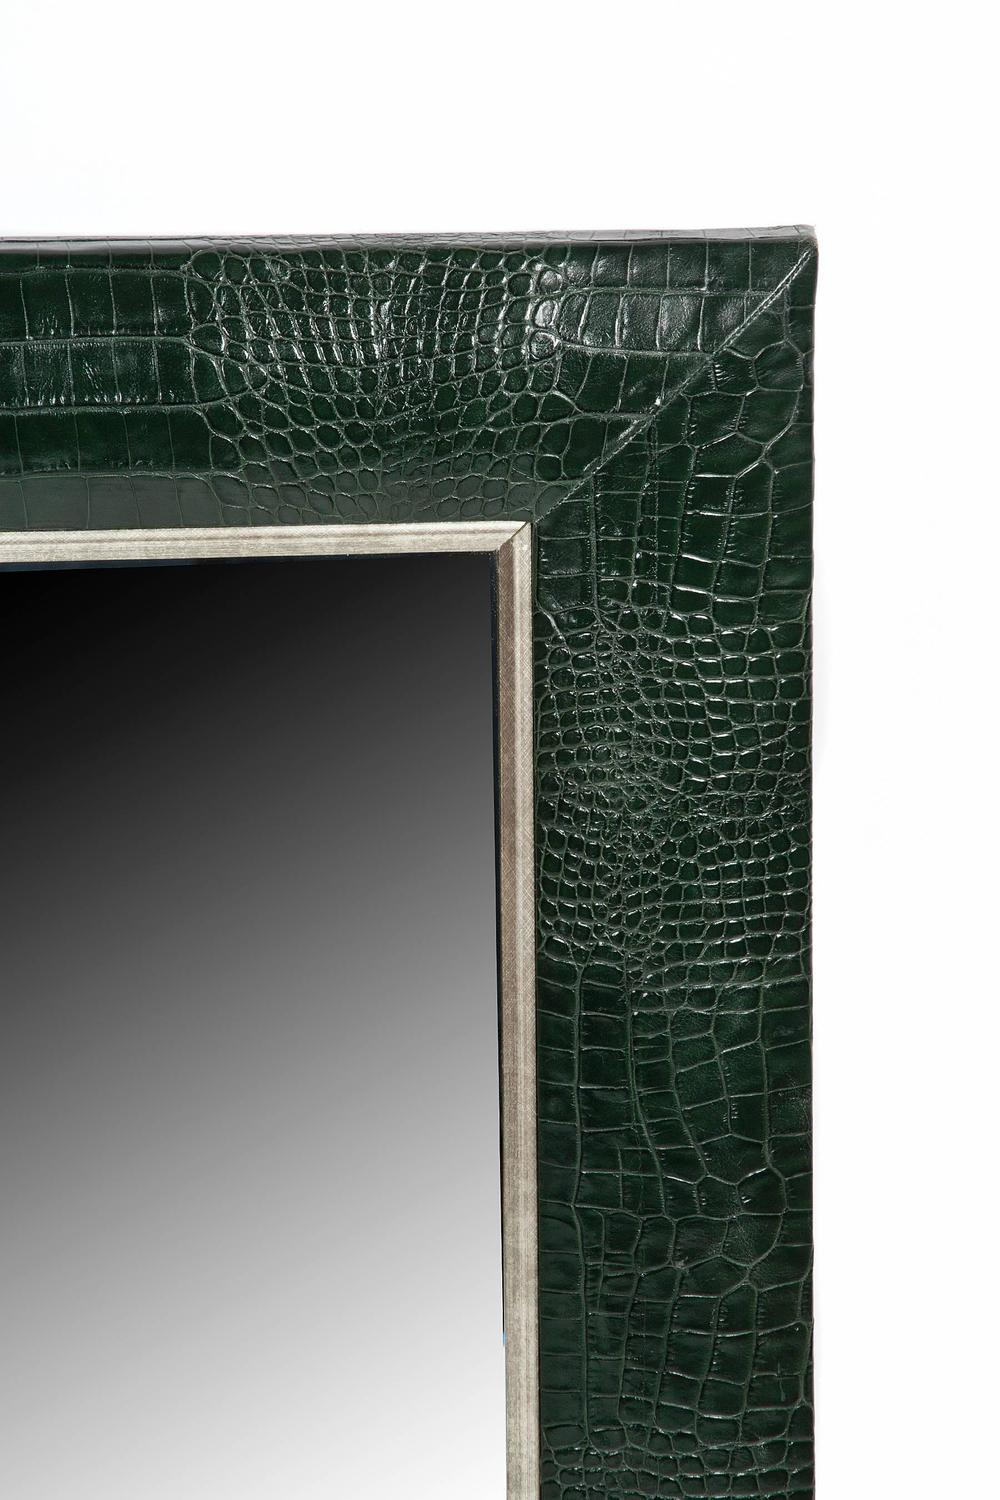 Contemporary classic hunter green croc leather framed for Silver framed mirrors on sale